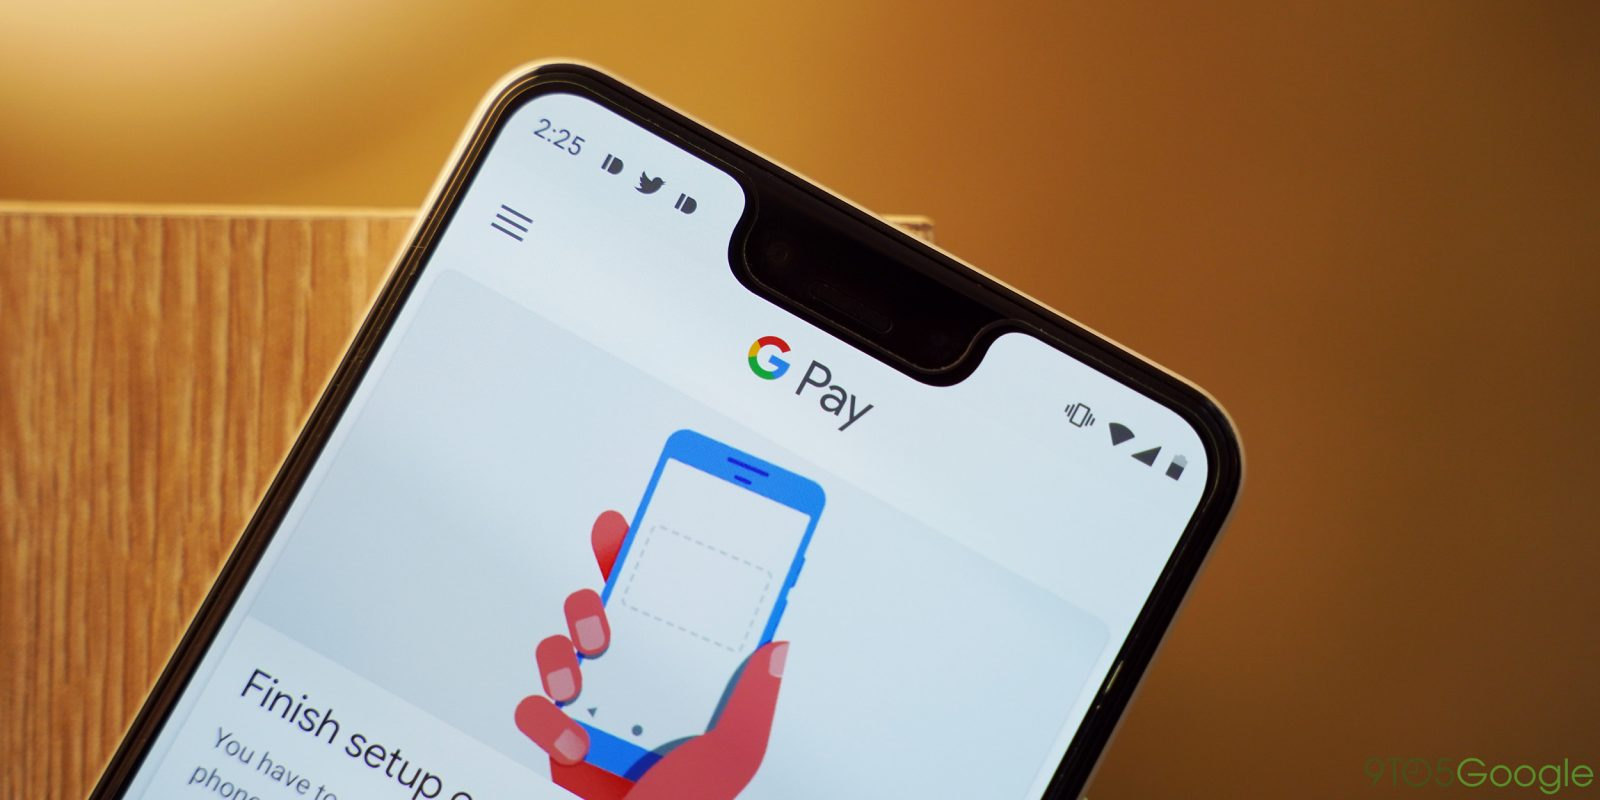 Google Pay adds dark mode in latest v2.96 app update